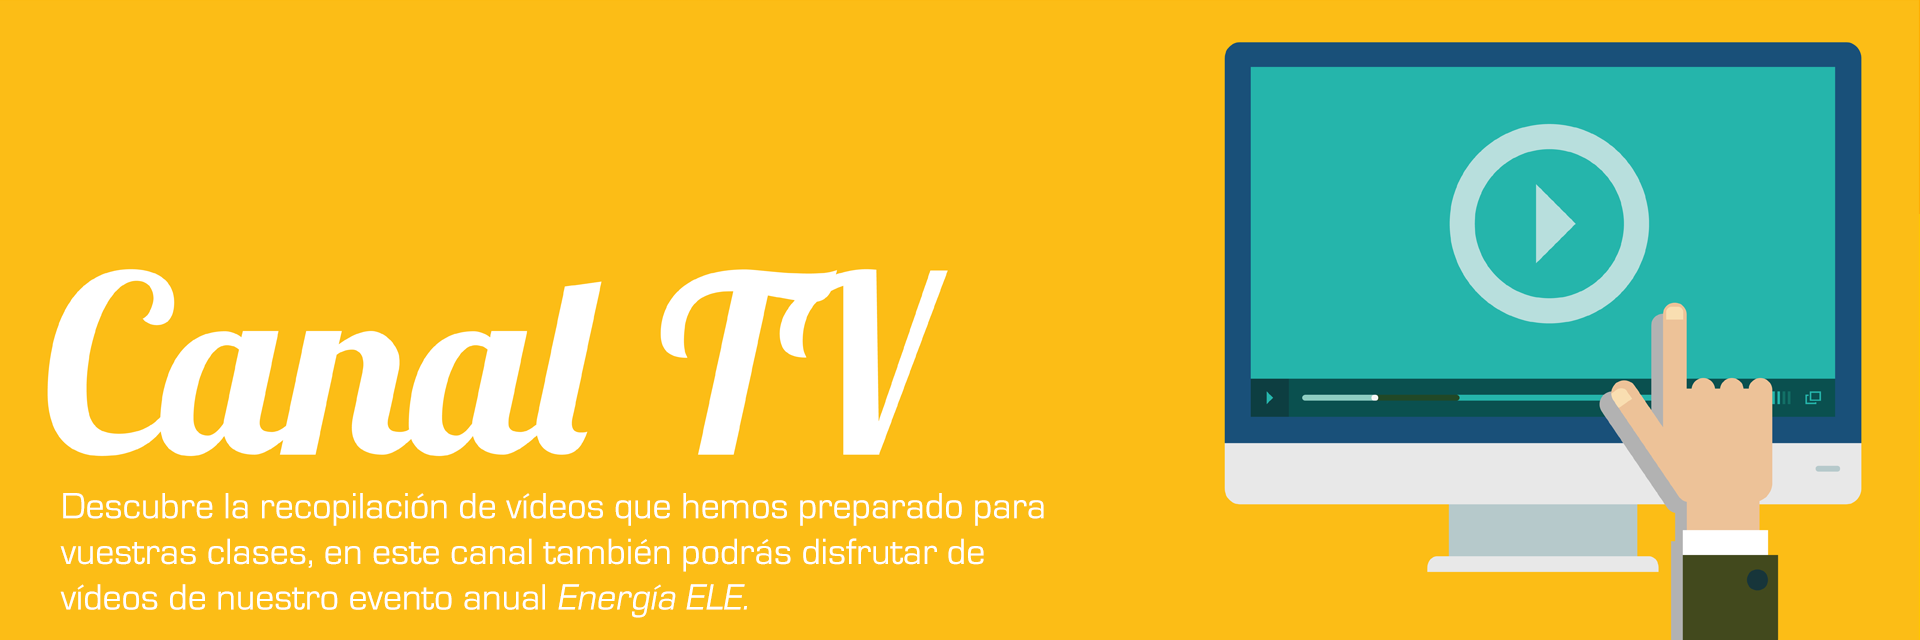 canal_tv